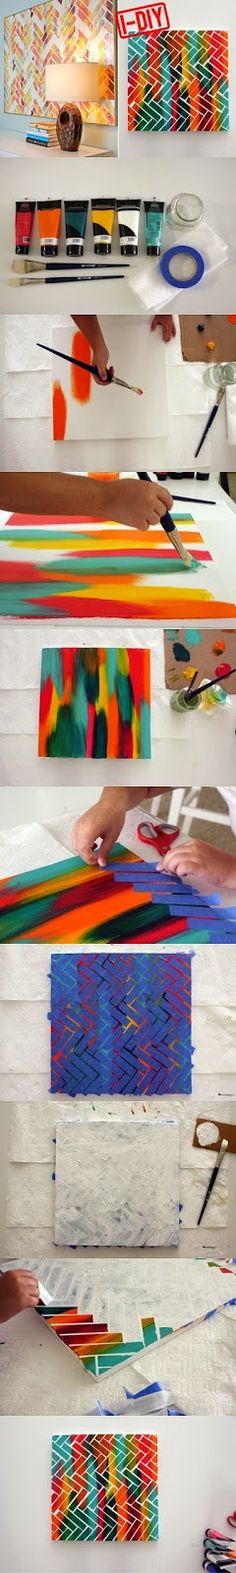 DIY Project Painters Tape Art, pretty awesome and neat that someone shared the idea. Just one thing. This is art, not just a DIY project. Cute Crafts, Diy And Crafts, Arts And Crafts, Painters Tape Art, Cuadros Diy, Creation Deco, Ideias Diy, Diy Wall Art, Diy Artwork